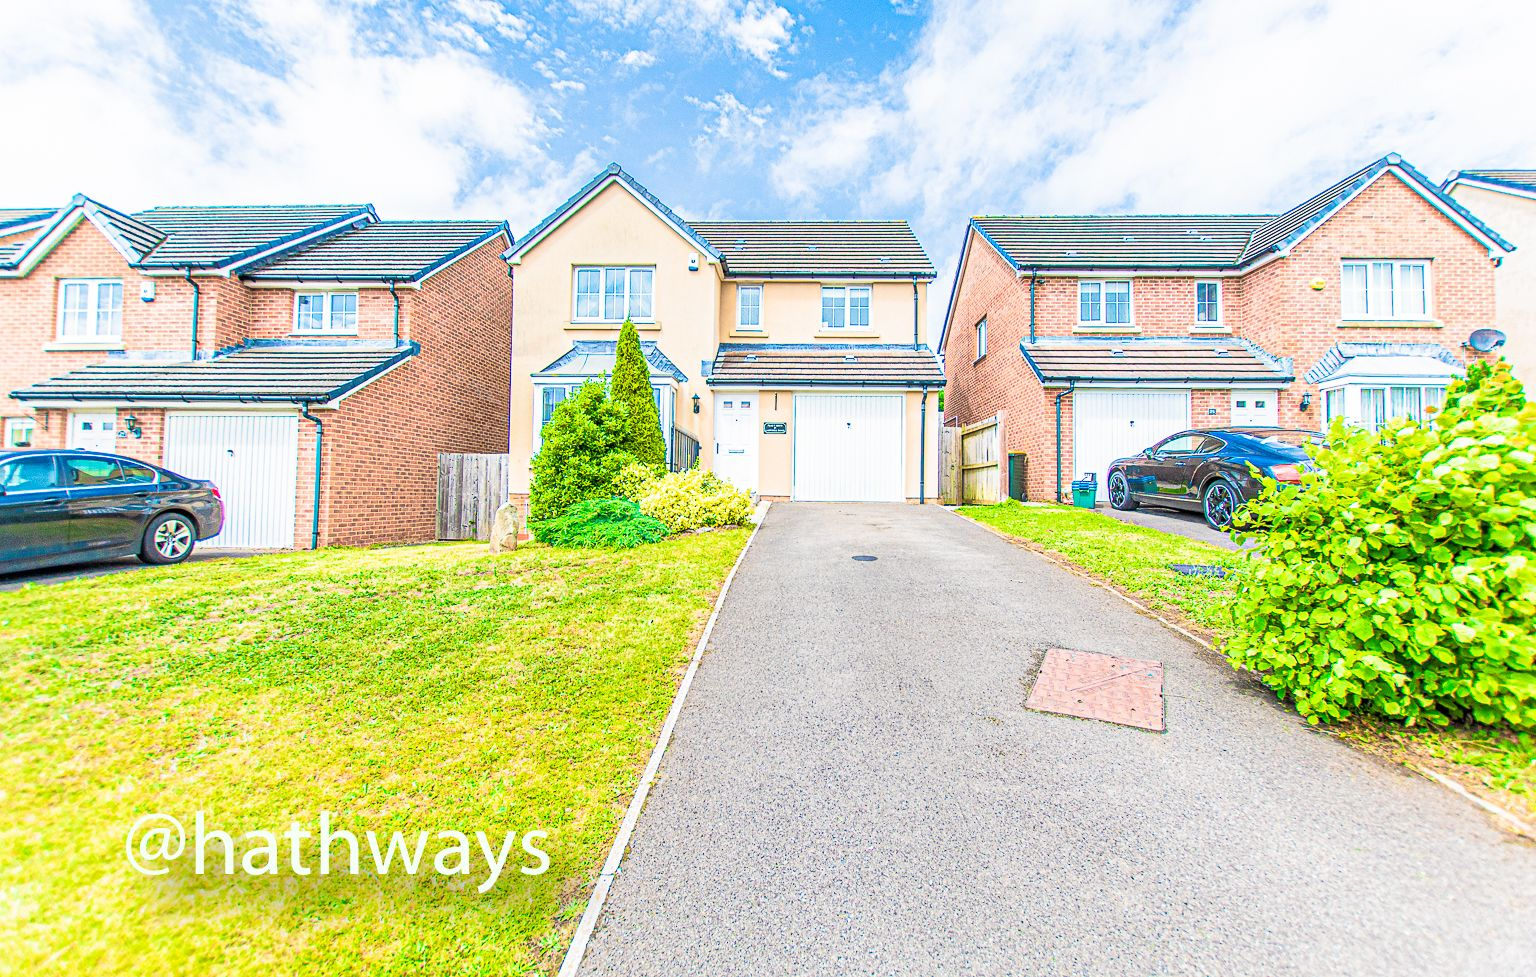 4 bed house for sale in Ladyhill Road - Property Image 1